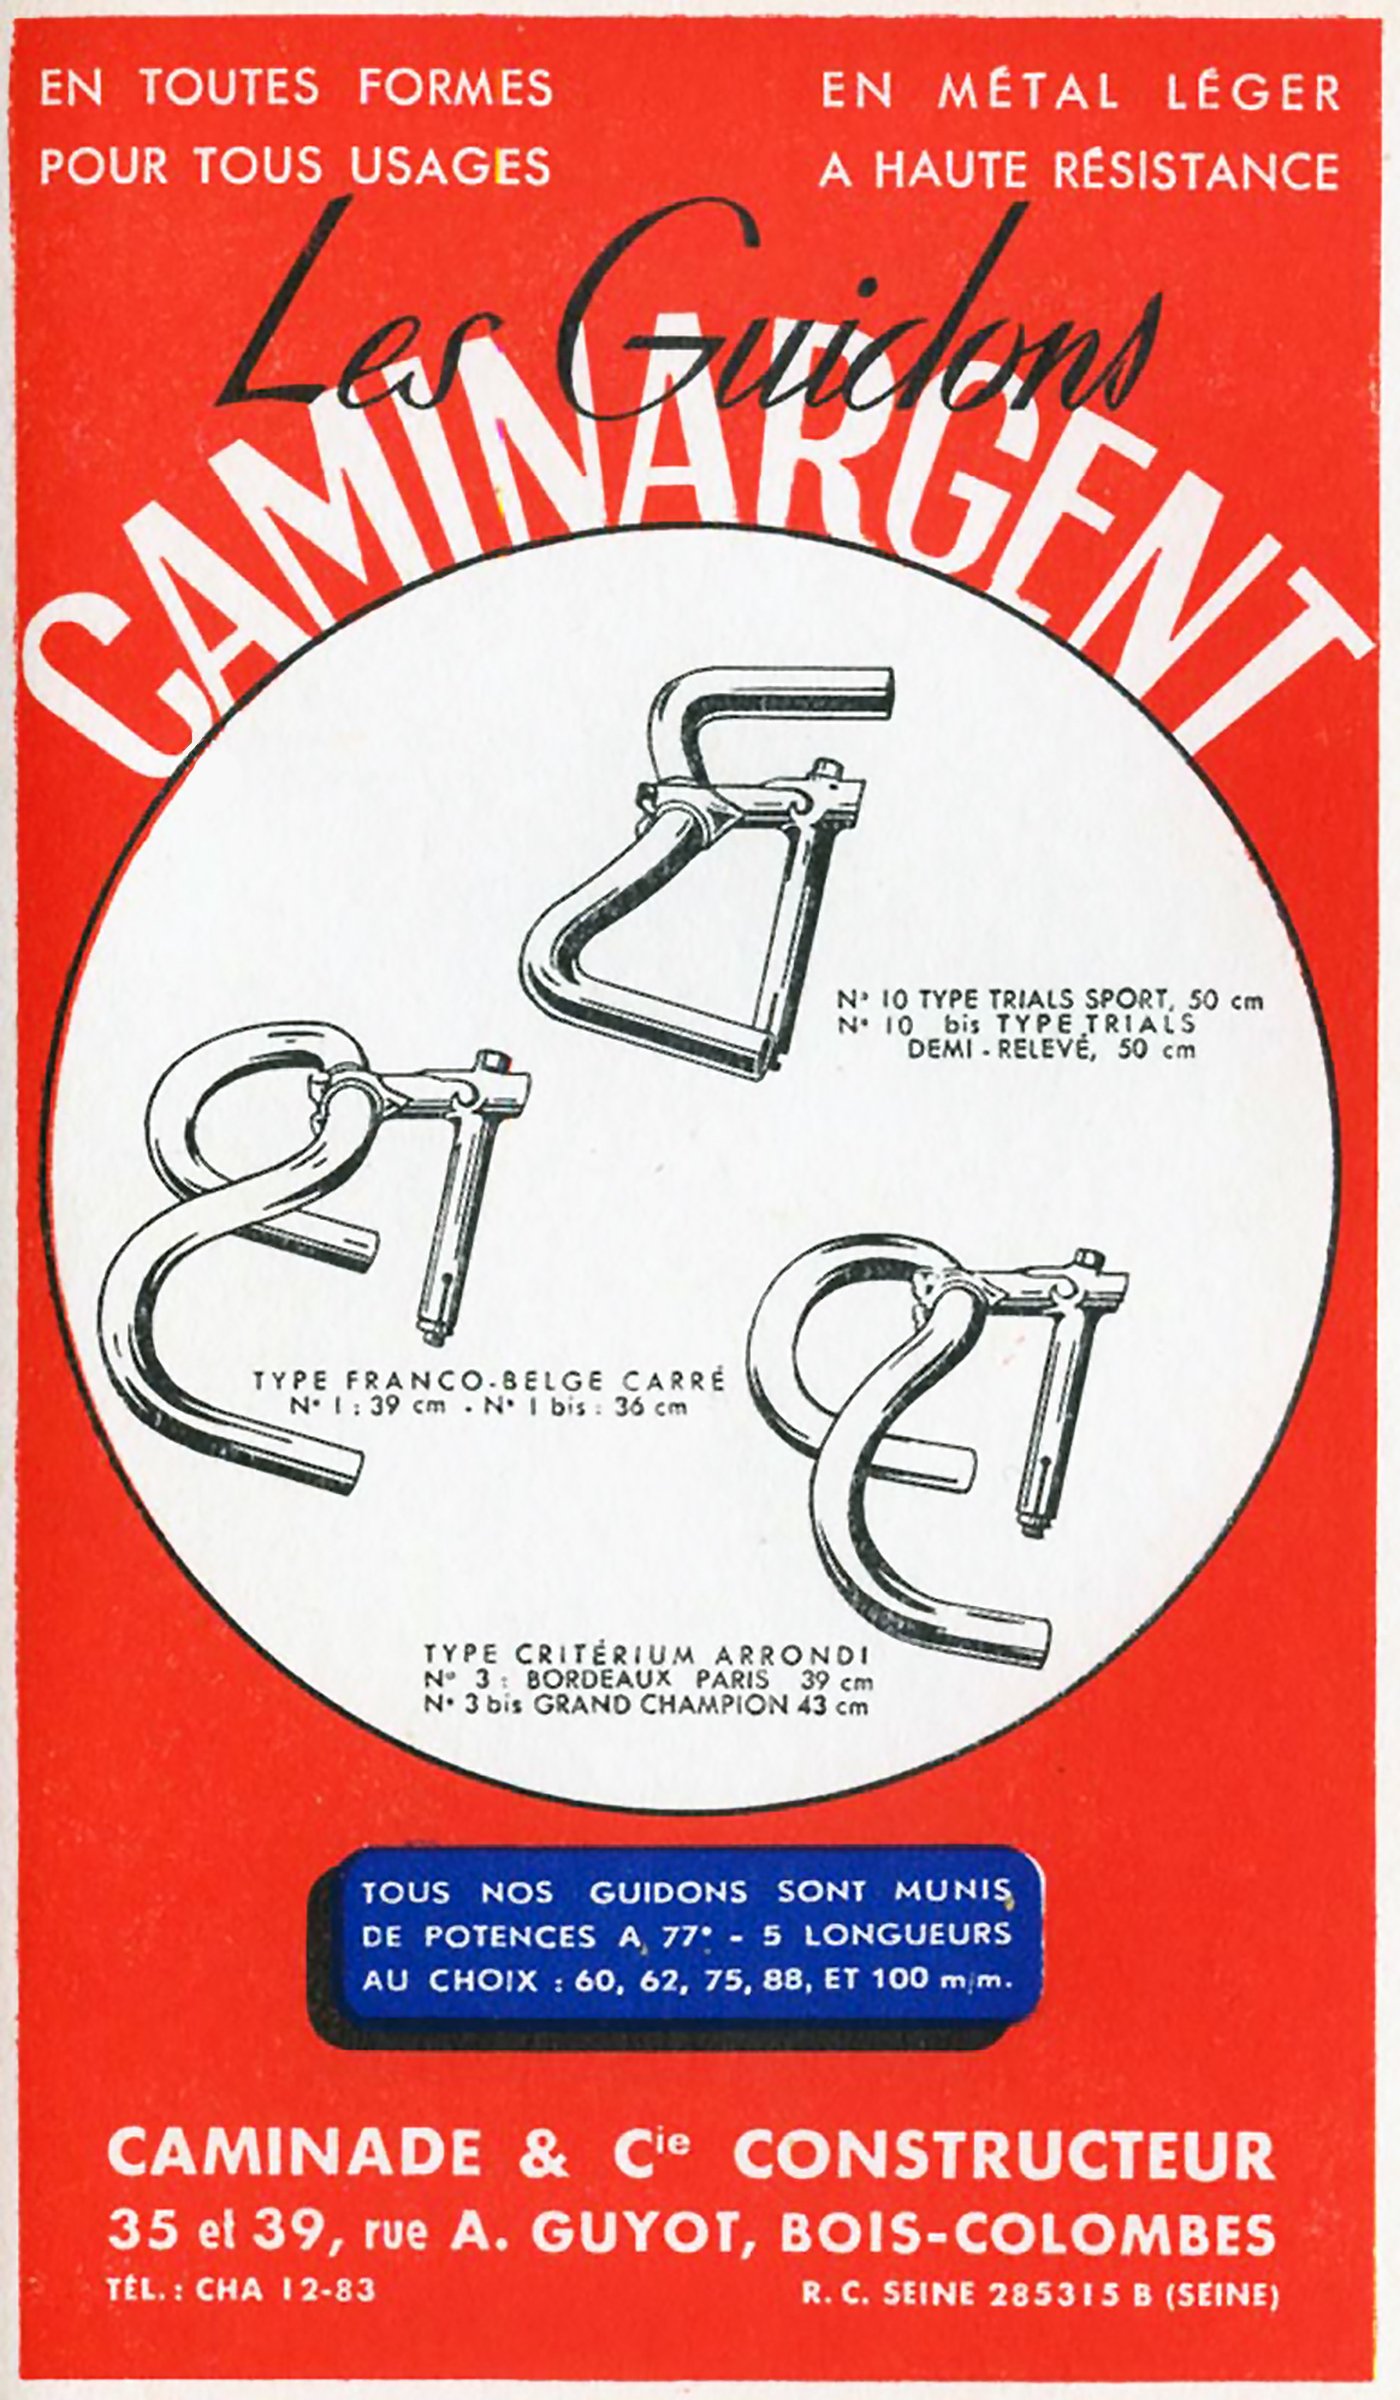 ebykr-caminargent-les-guidons-1949-advertisement